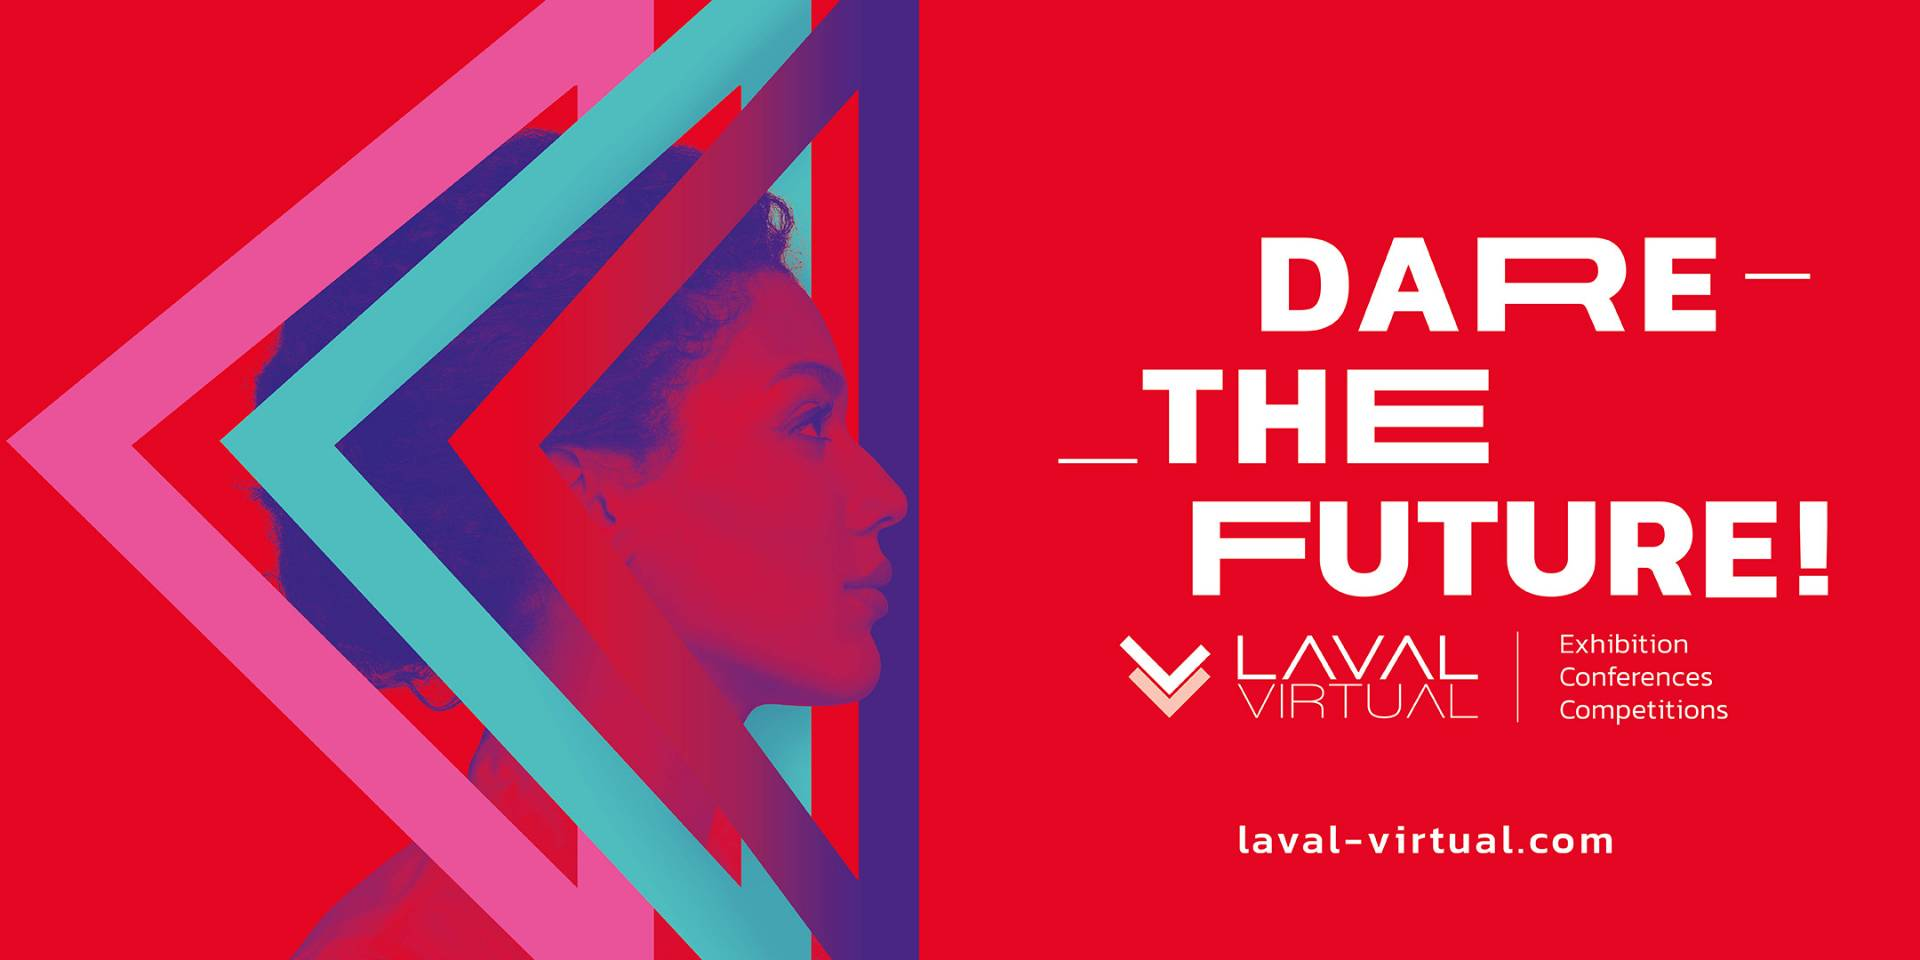 Laval Virtual : Exhibition and Conference on VR/AR